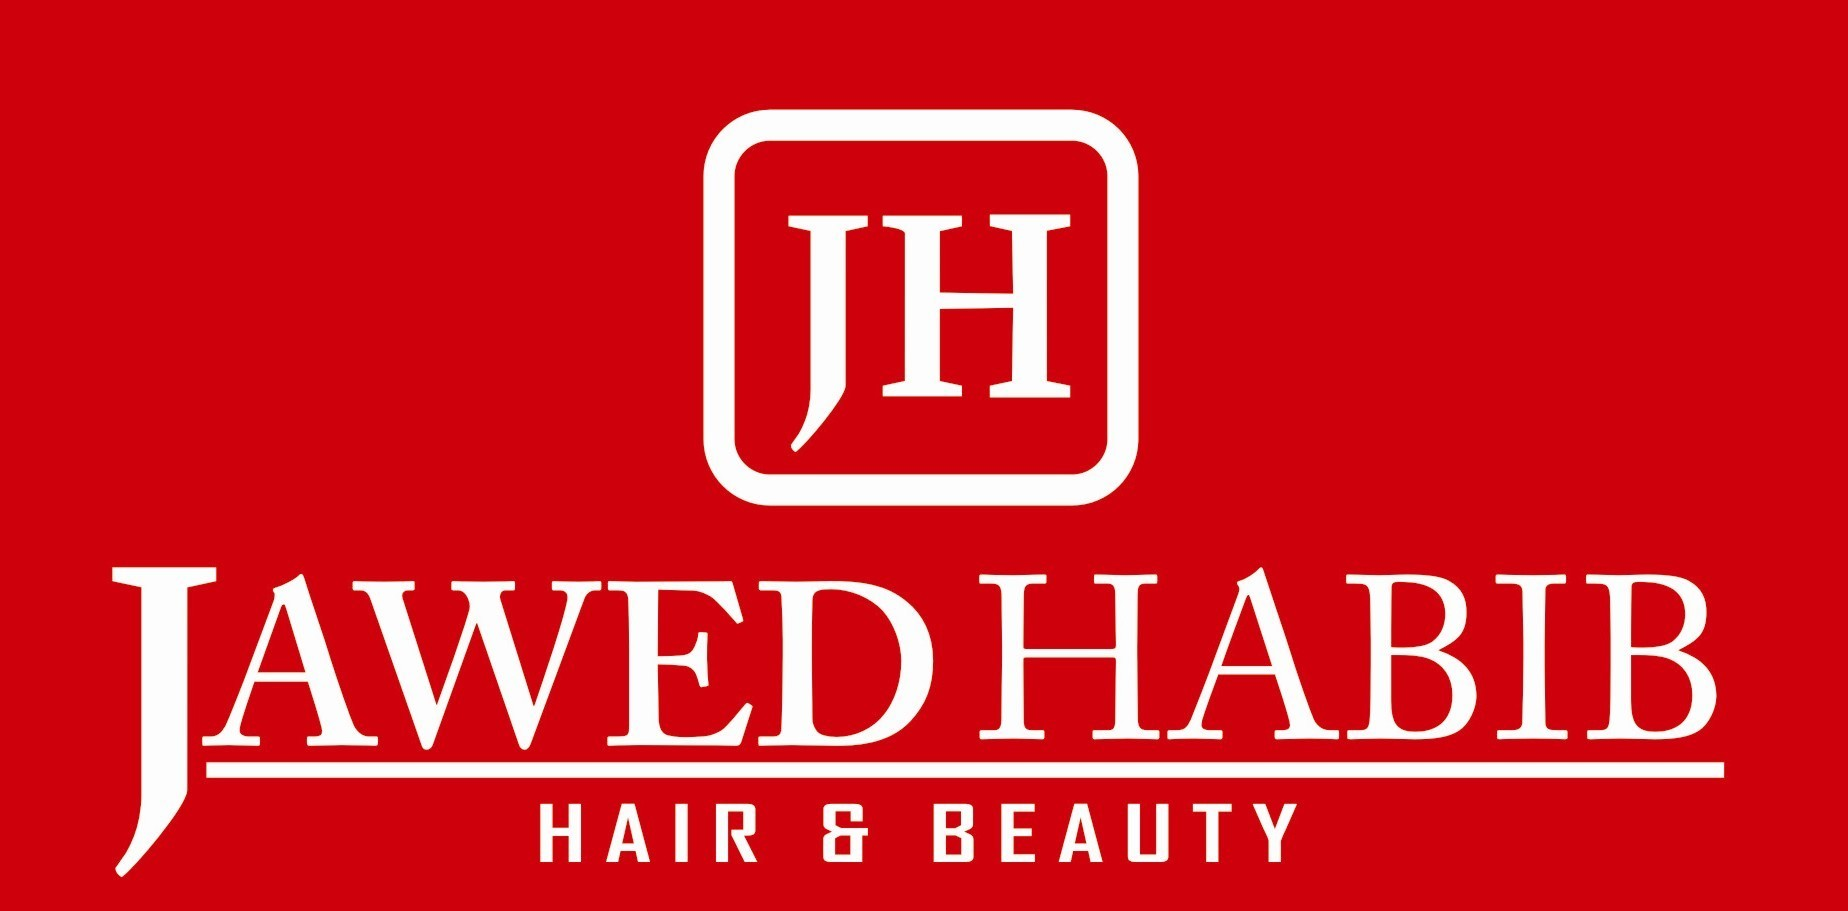 Jawed Habib Hair & Beauty Salons - Marris Road - Aligarh Image